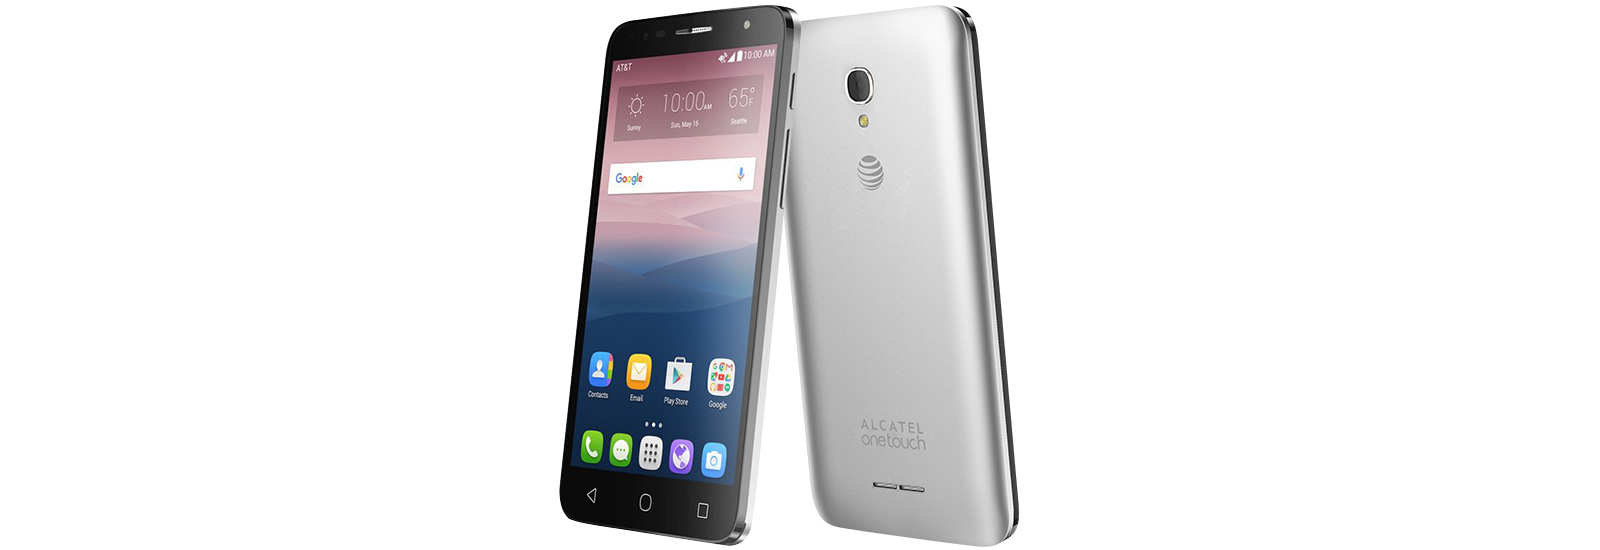 alcatel allura android smartphone for att gallery1 1 - Alcatel OneTouch Allura Price, Specs and Features.